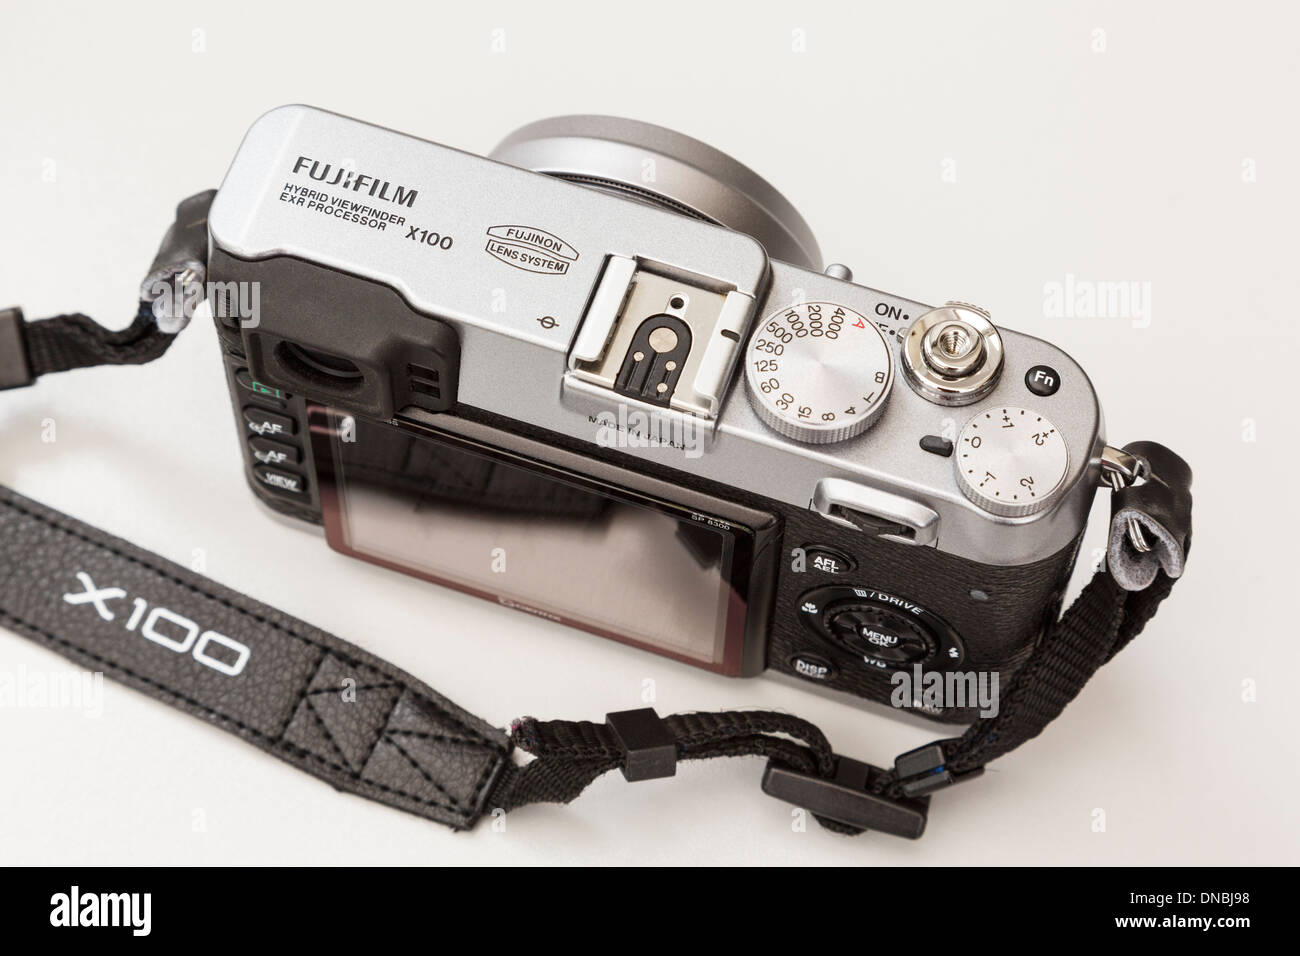 Fujifilm X100 traditional style retro compact digital camera top plate with dials - Stock Image